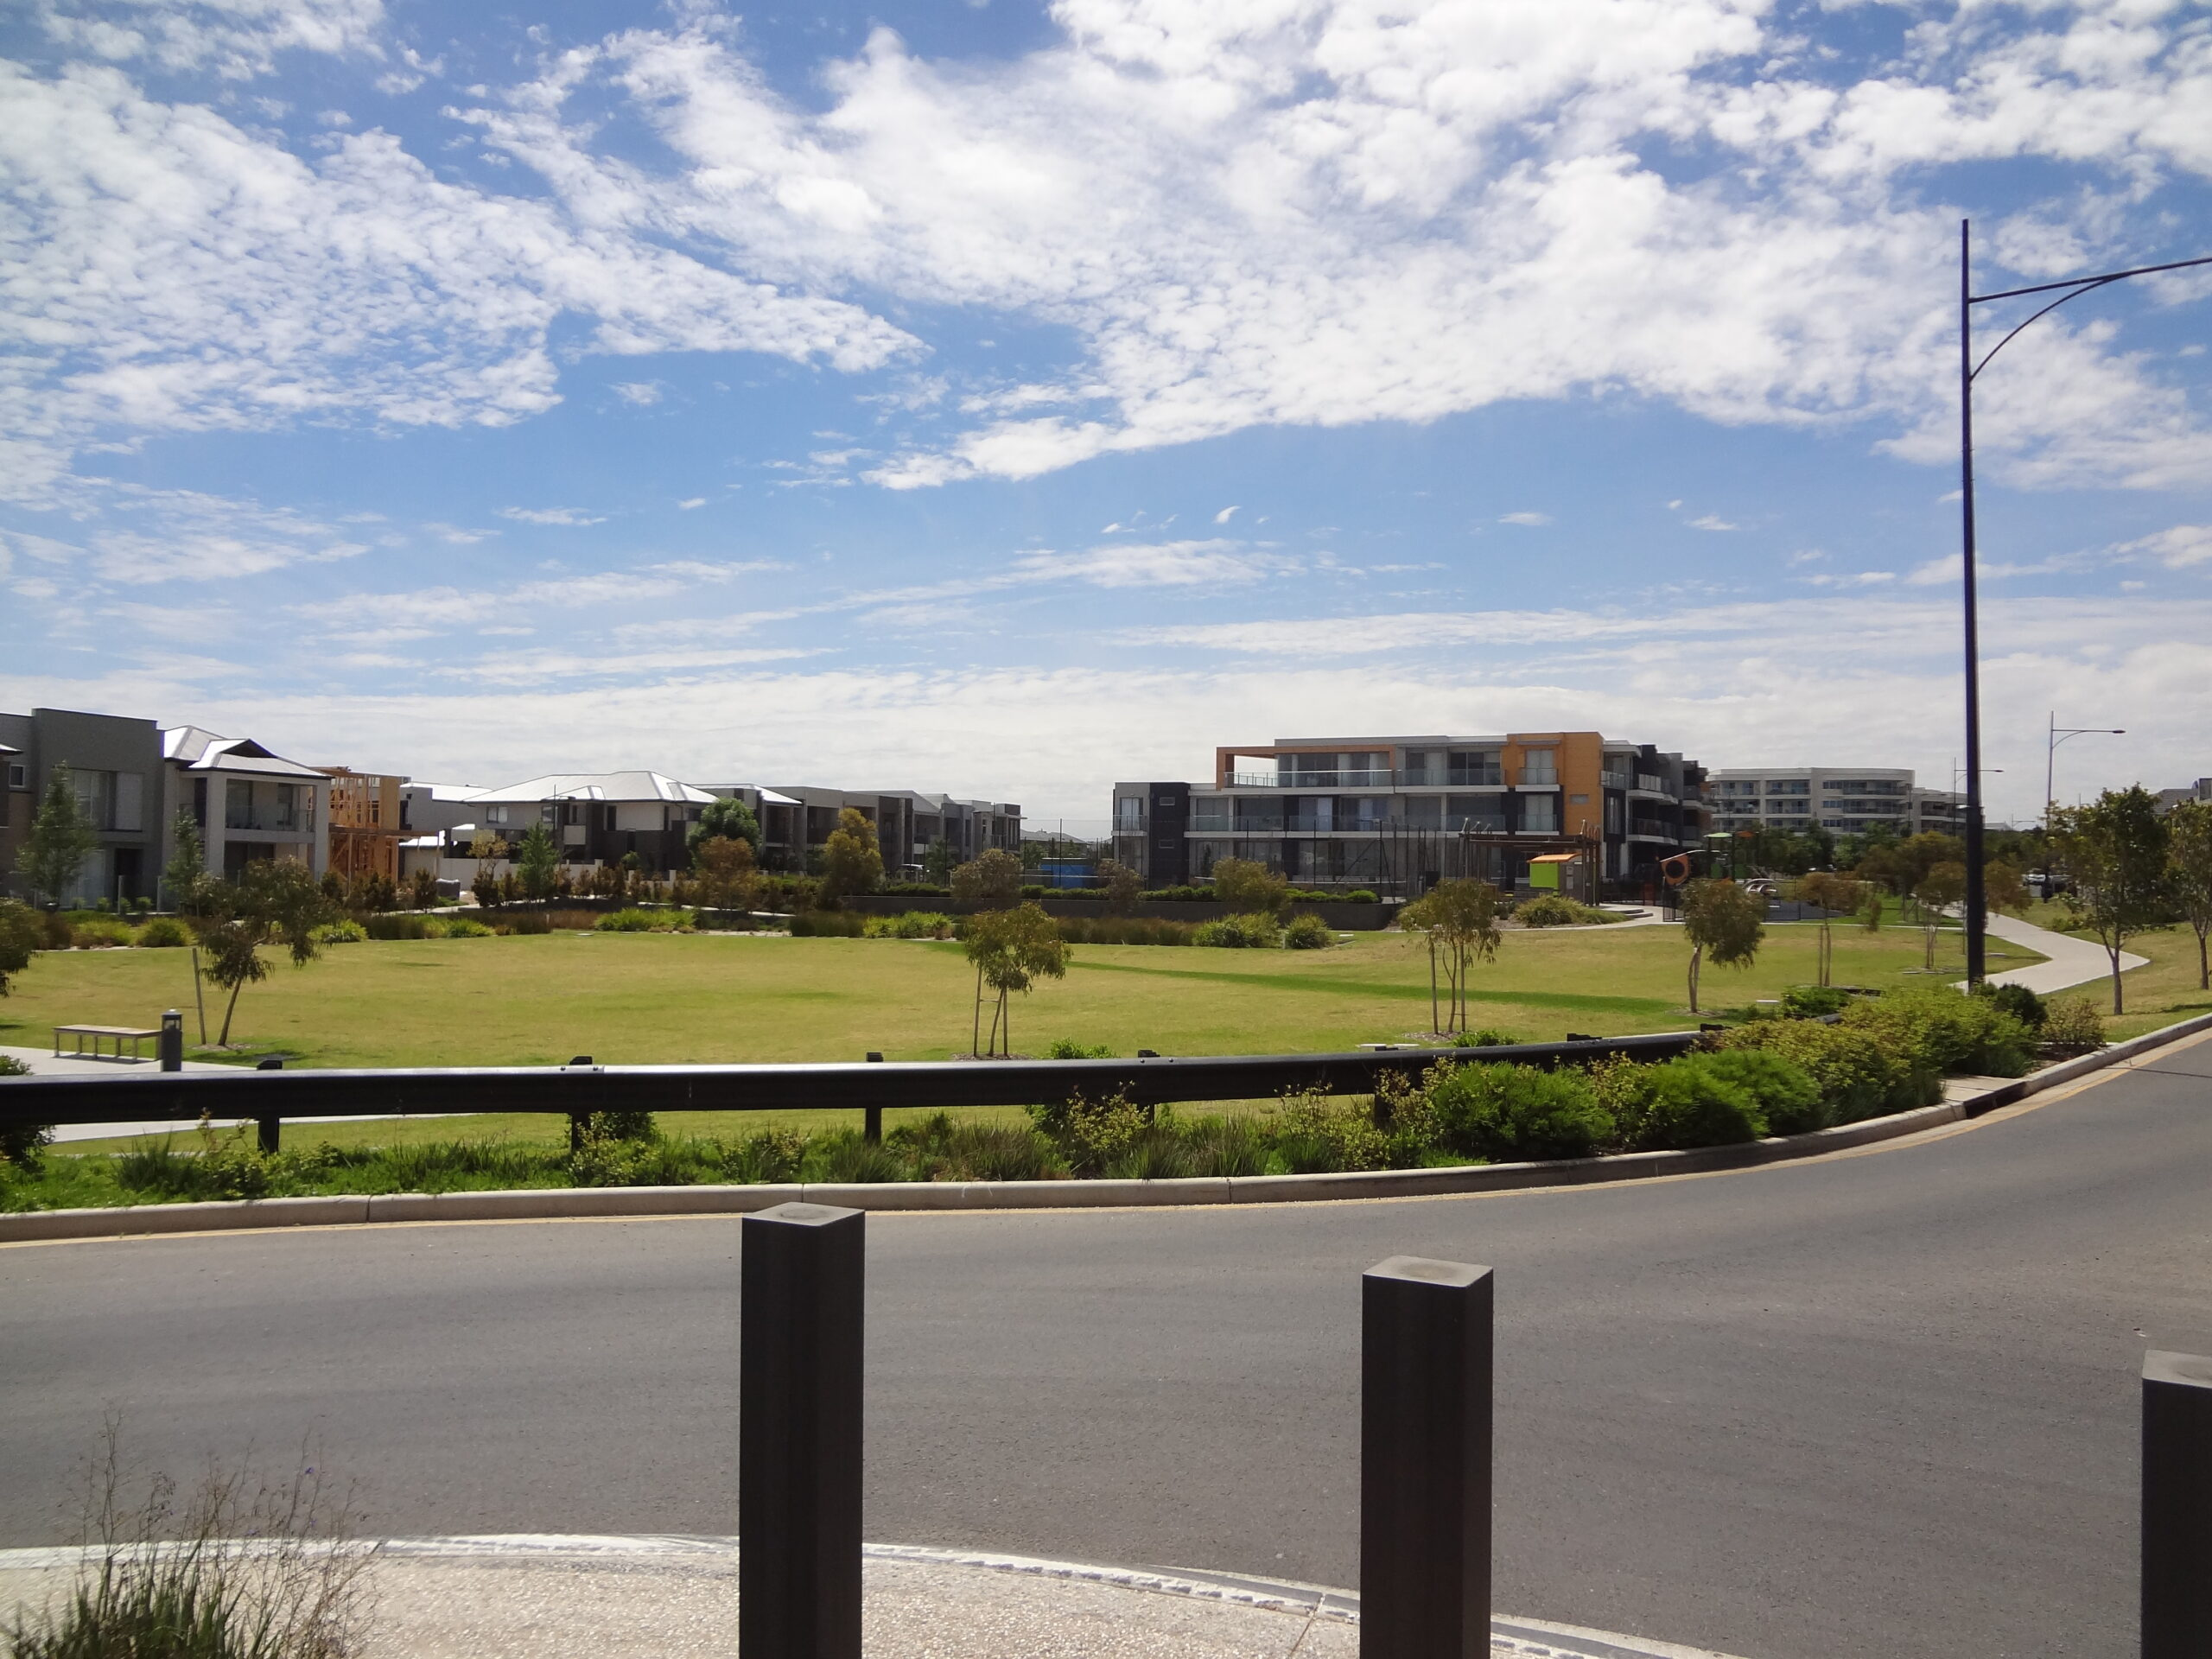 Waterford Circuit, Lightsview - stormwater harvesting and re-use